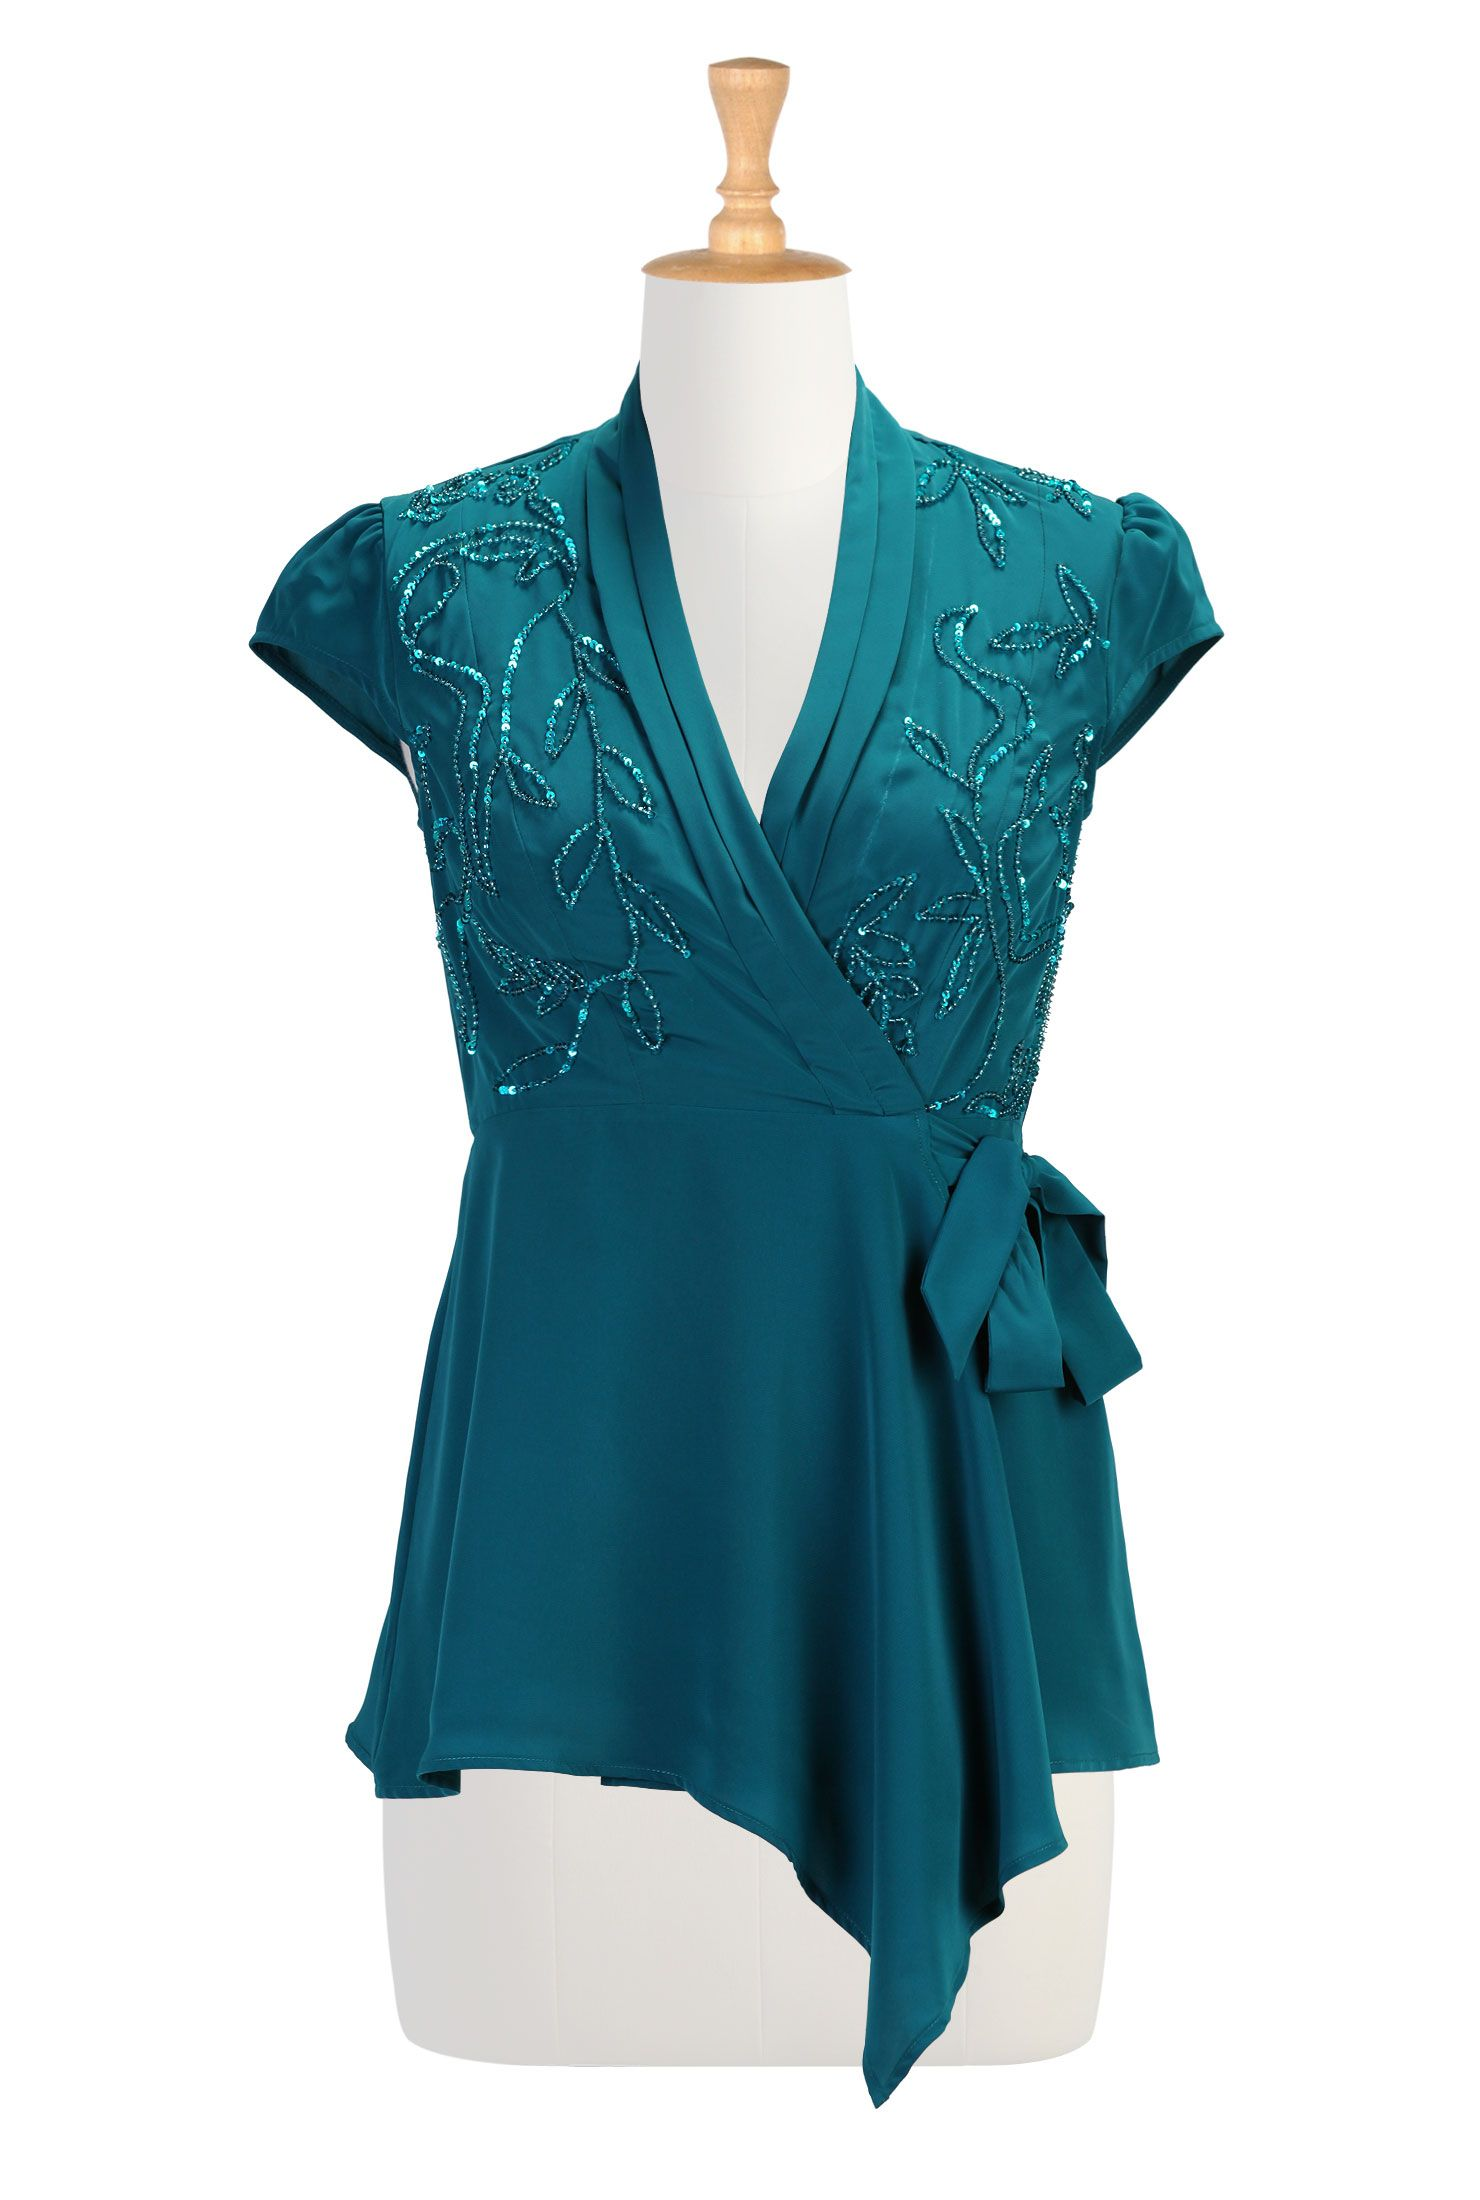 dressy tops for women - Google Search